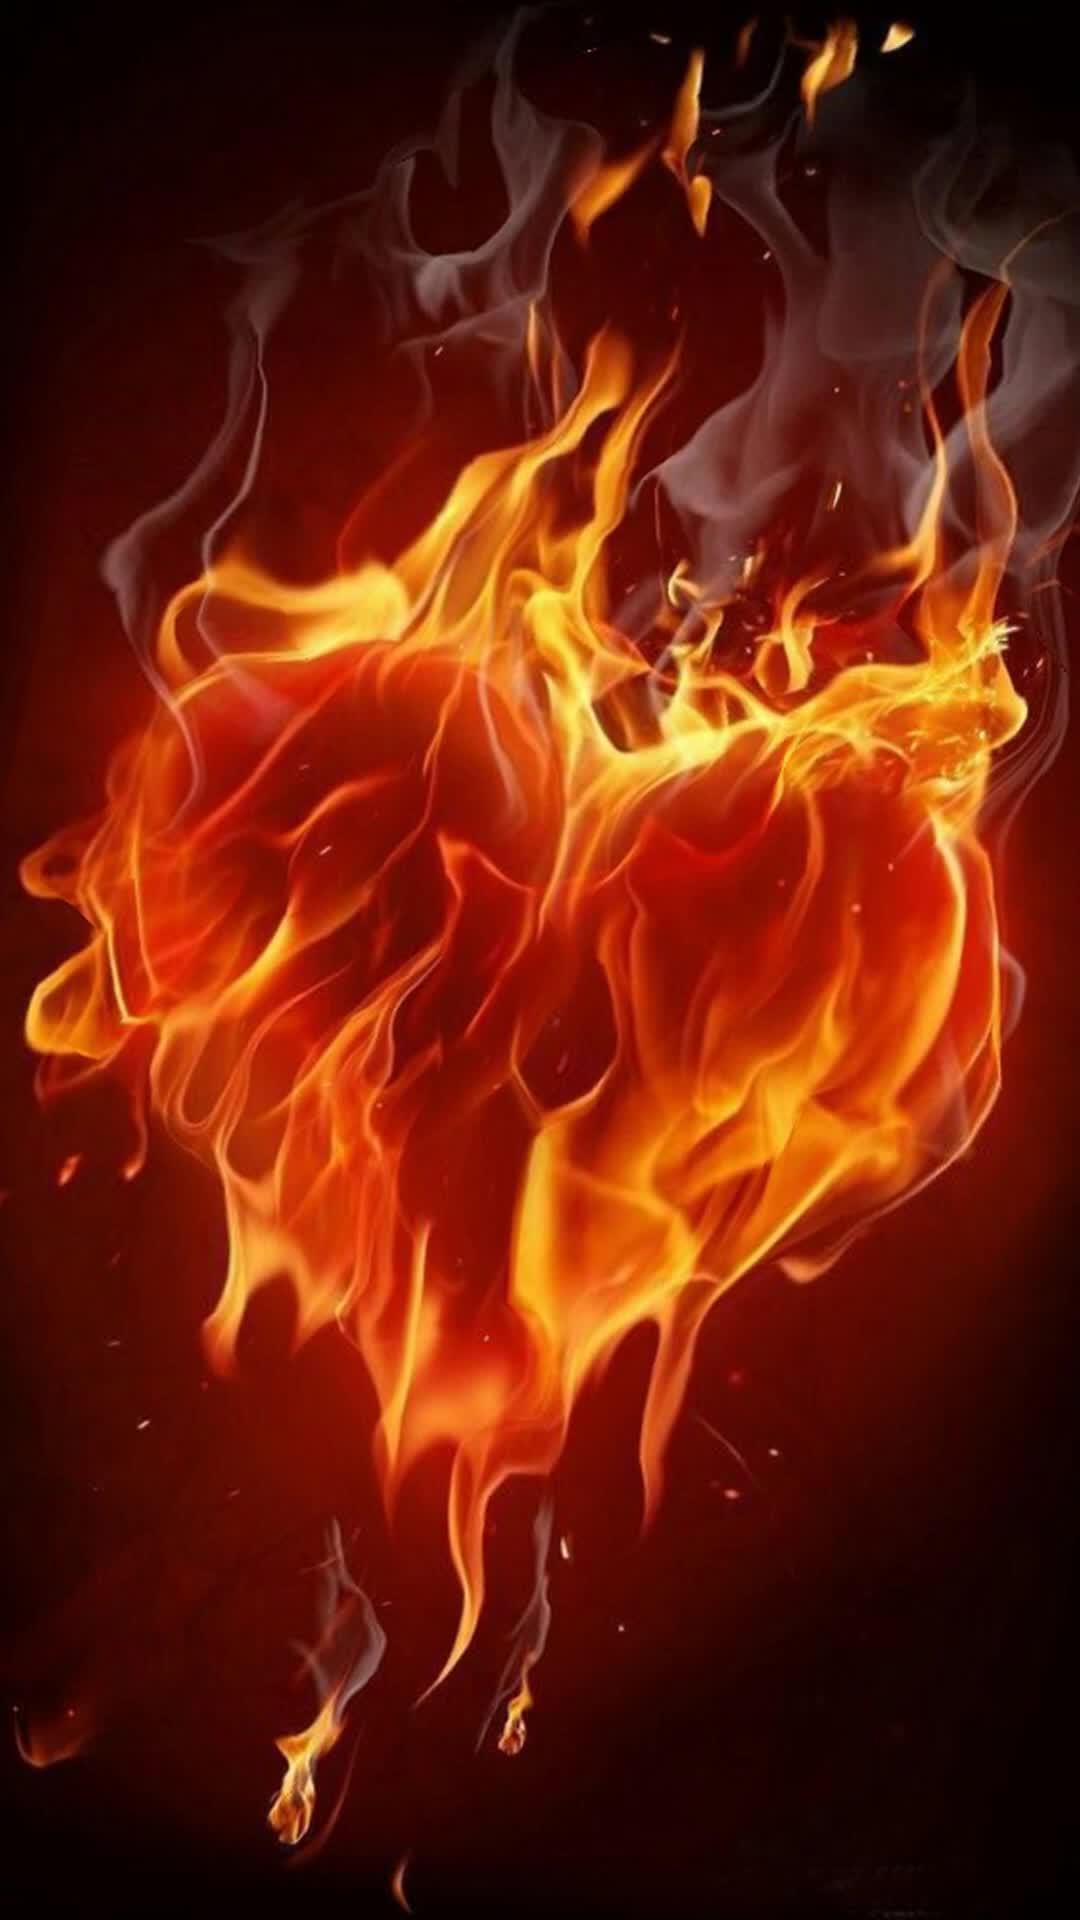 animation, fire, flames, heart, mirage, orange, red, trippy, yellow, Flaming Heart GIFs